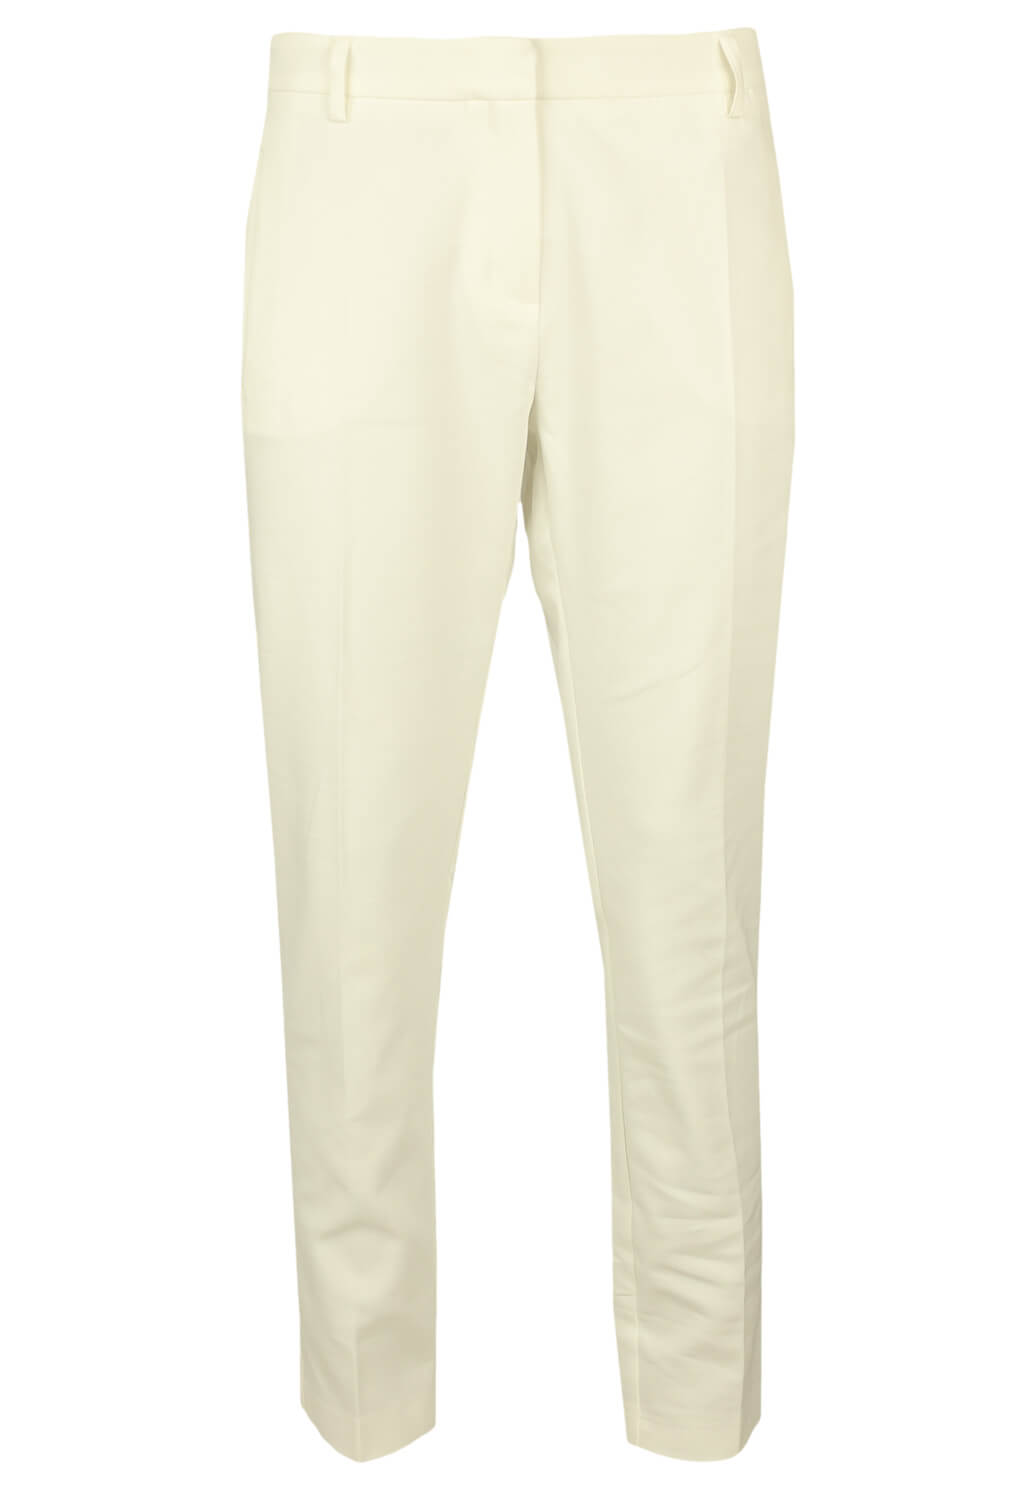 Pantaloni de stofa Orsay Kitty White